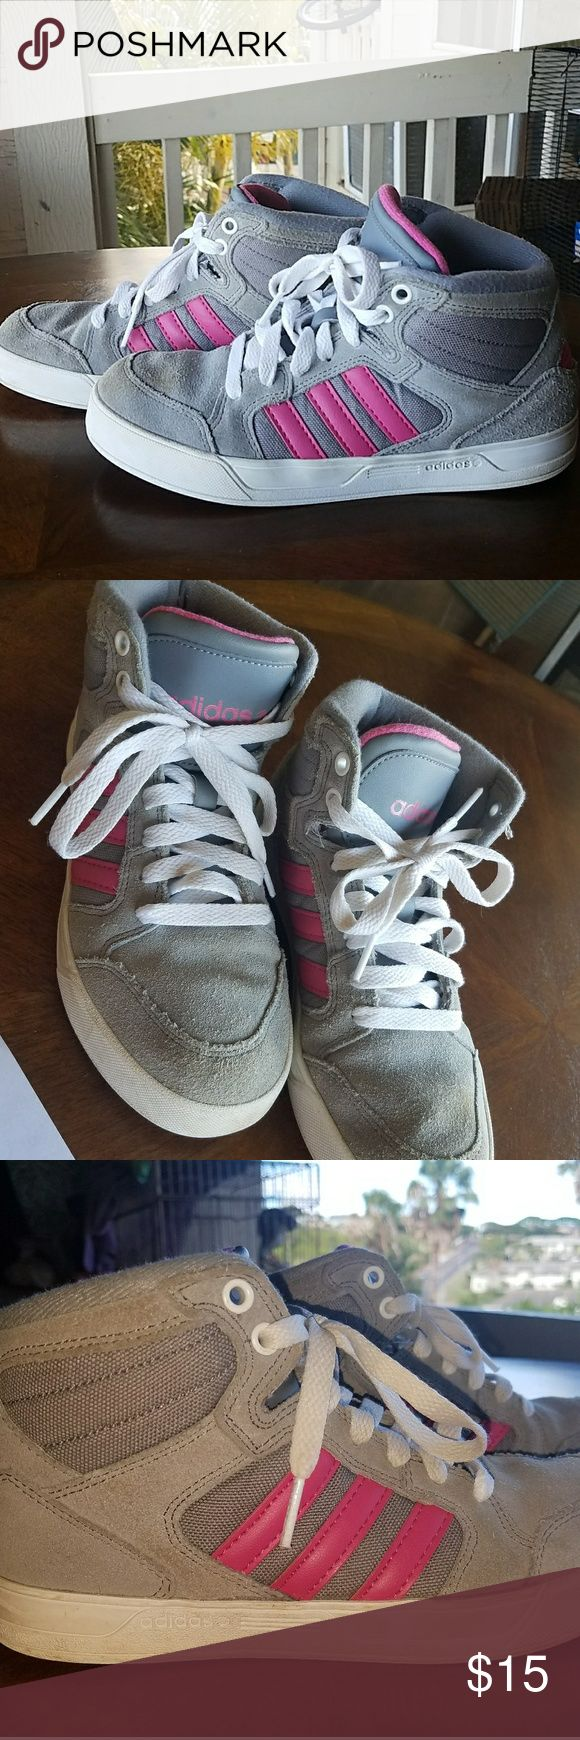 Adidas Neo Raleigh High Top Girl Sneakers Grey and pink Adidas  sneakers size 4 1/2 In gently used condition adidas Shoes Sneakers